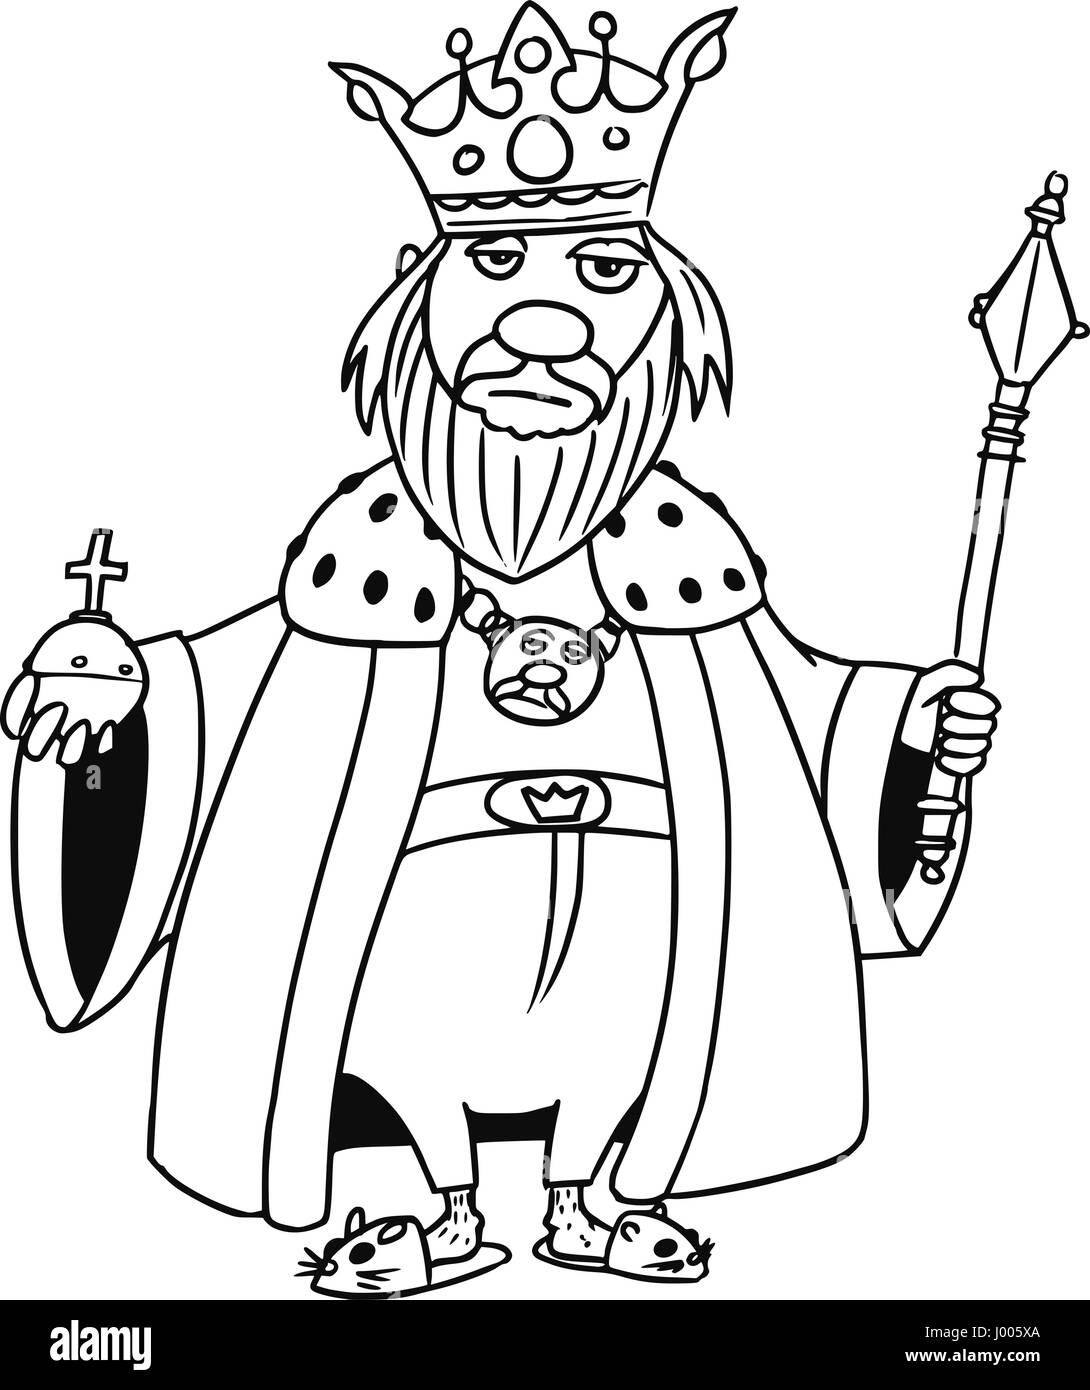 cartoon king crown black and white www pixshark com kings crown clipart free king crown clip art image